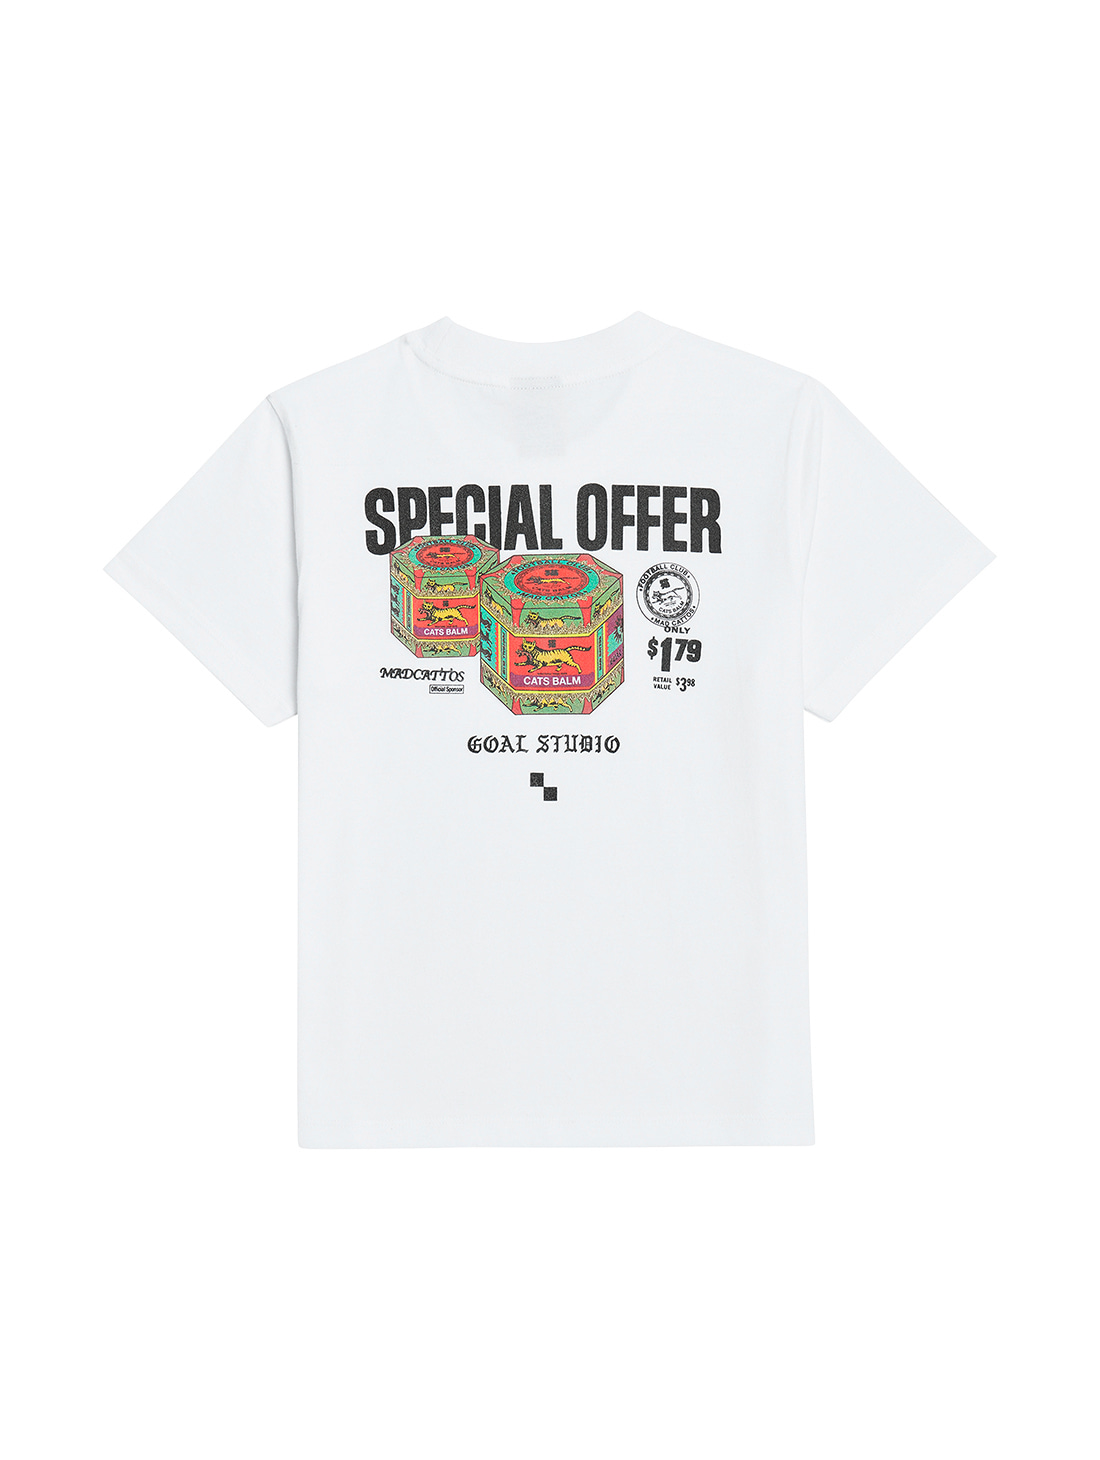 GOALSTUDIO (KIDS) MC BALM GRAPHIC TEE - WHITE